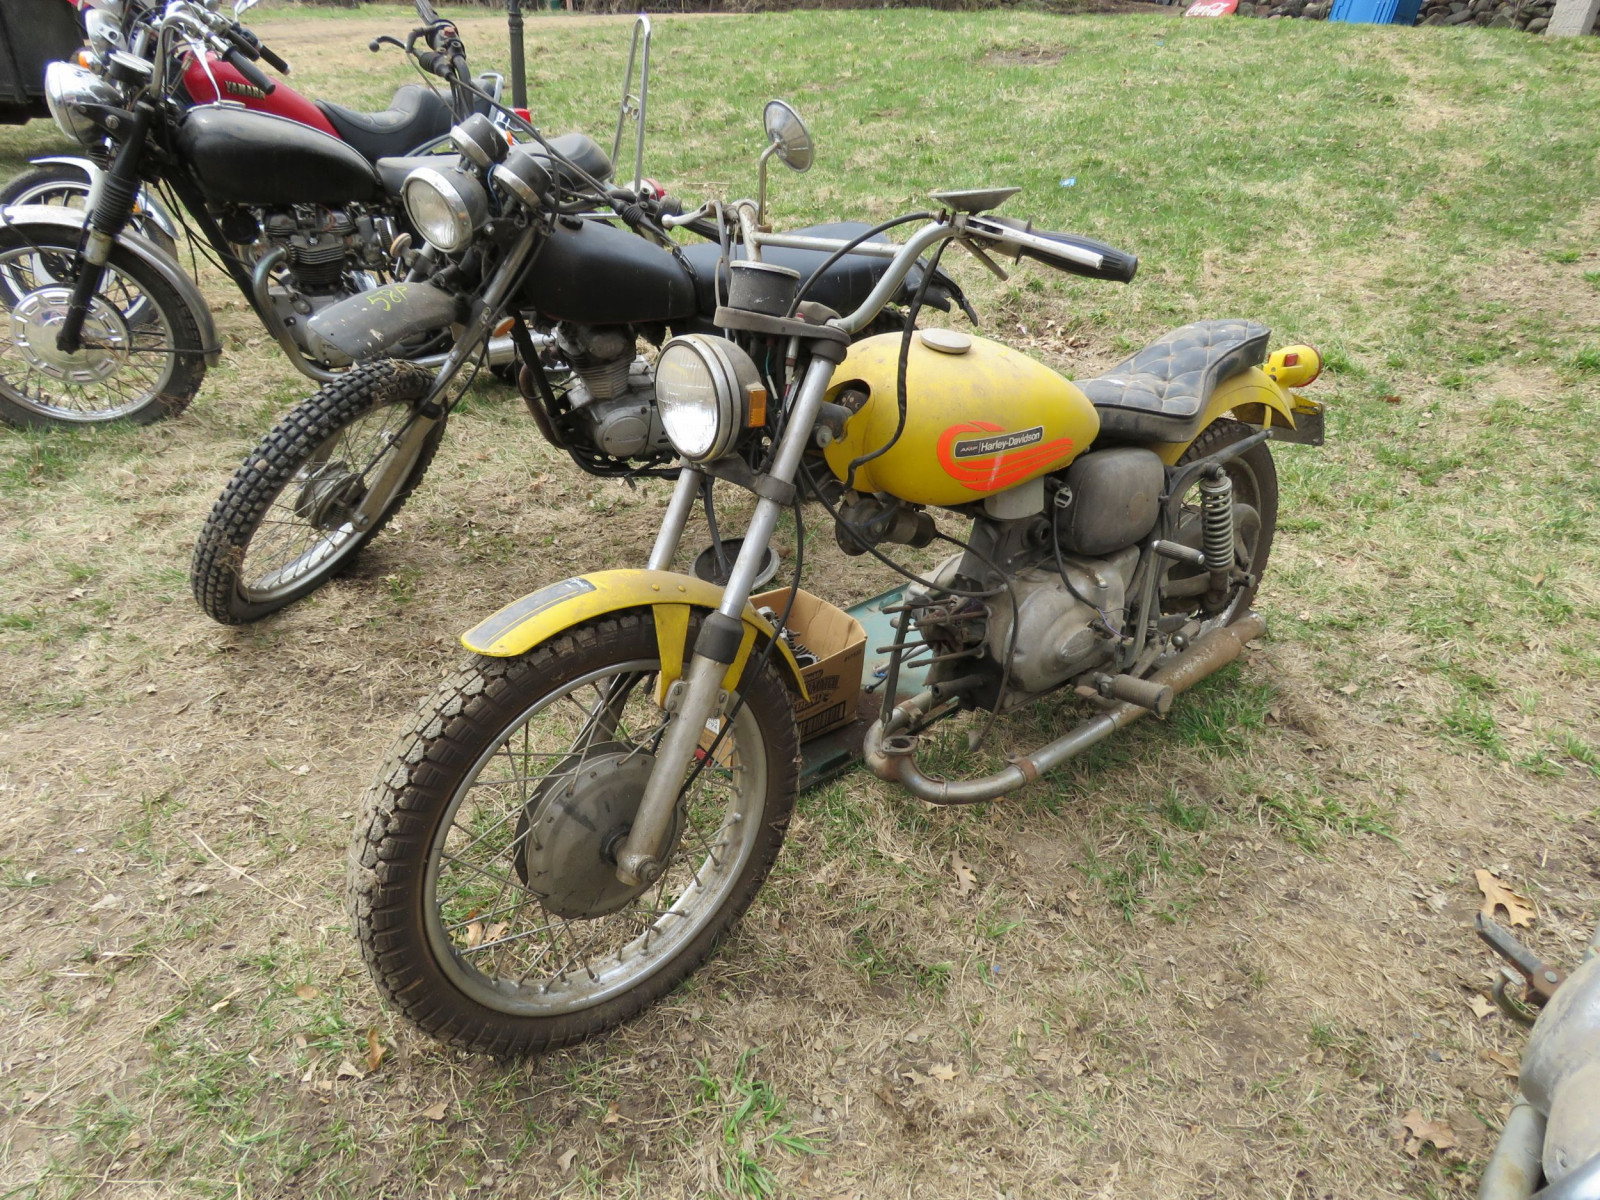 1971 Harley Davidson-AMF H2 Sprint GS350 Motorcycle for Project - Image 1